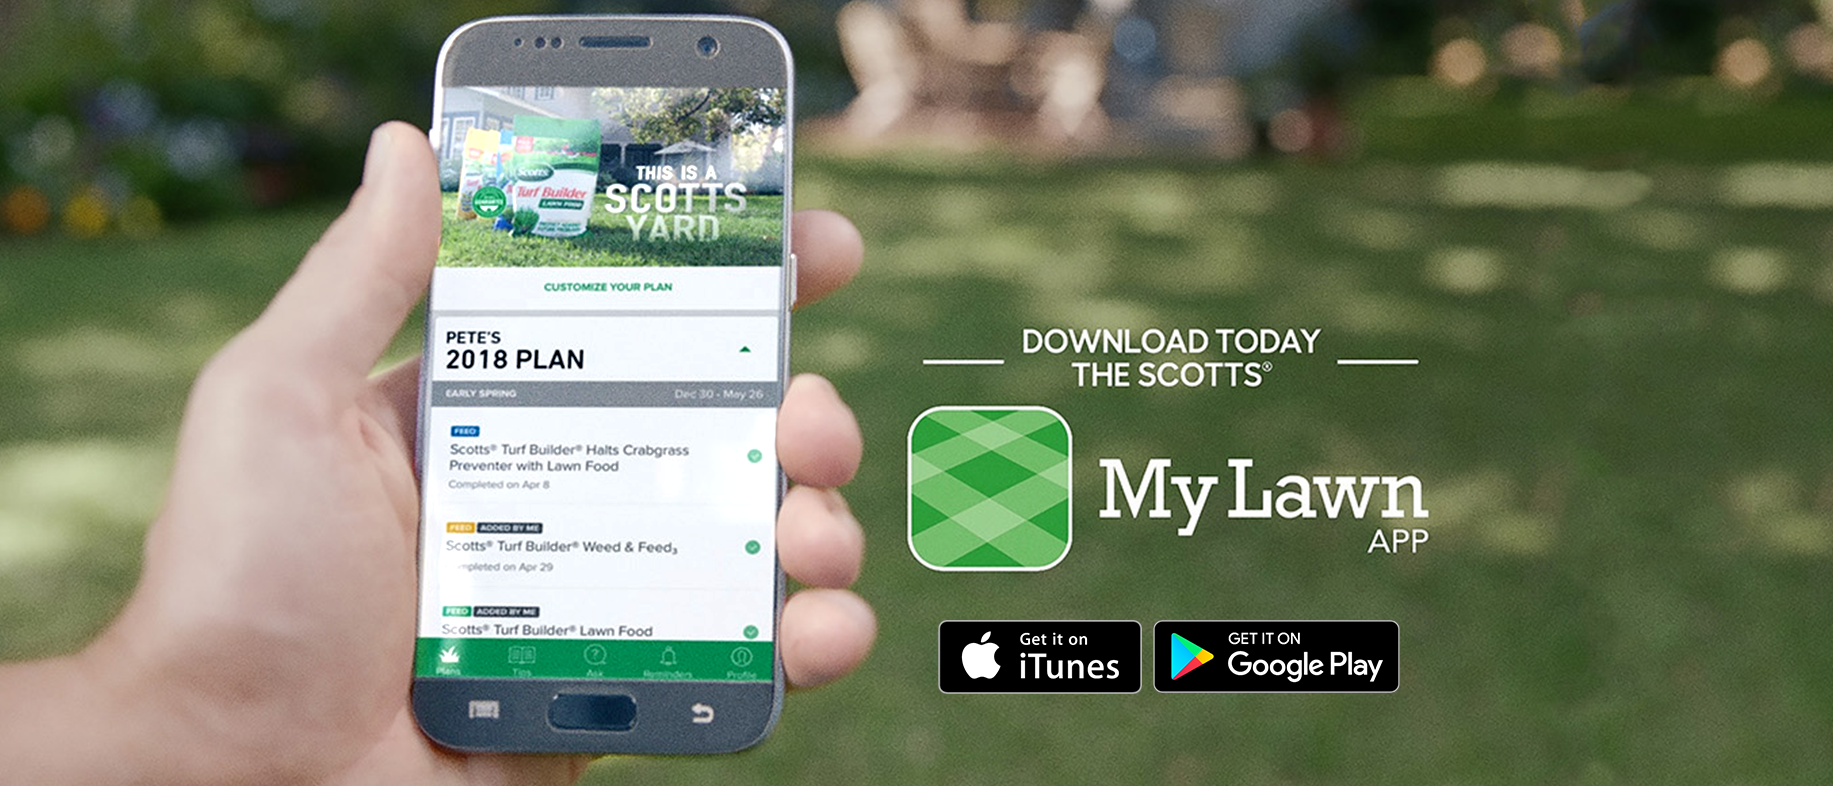 Download the Scotts MyLawn App